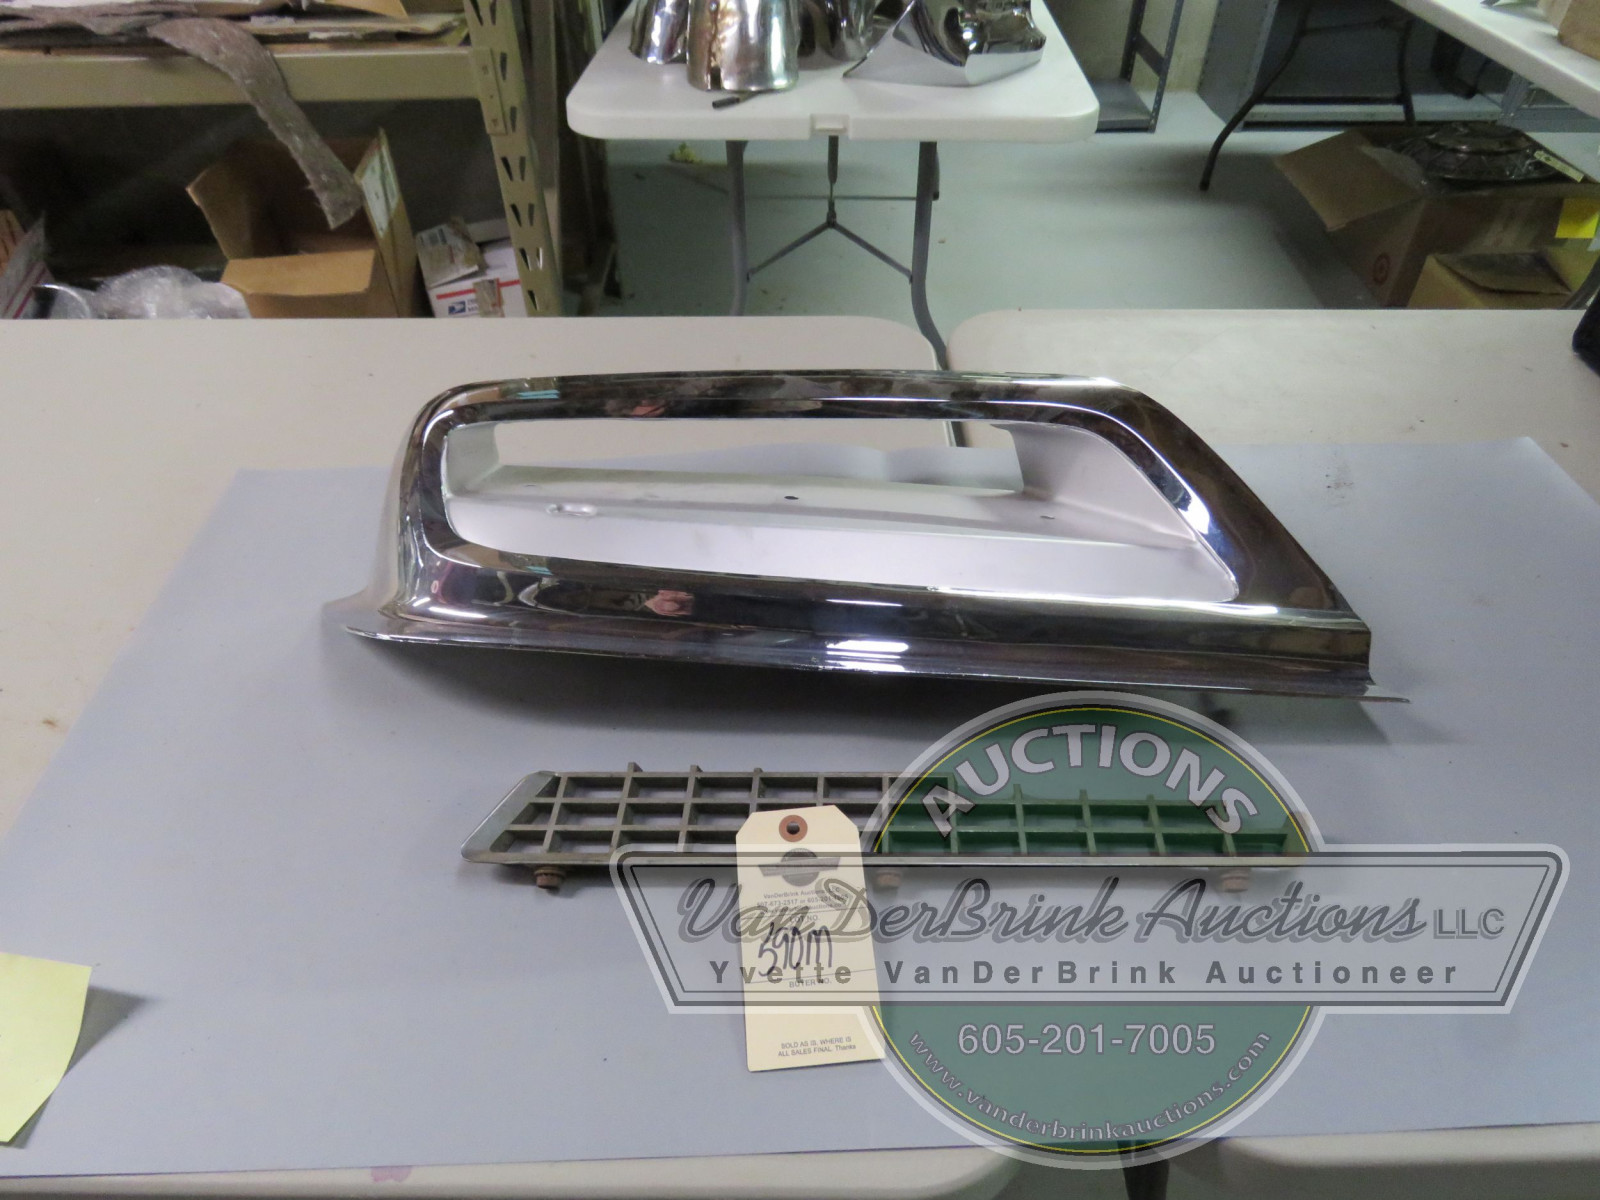 STUDEBAKER GRILL PARTS - Image 1